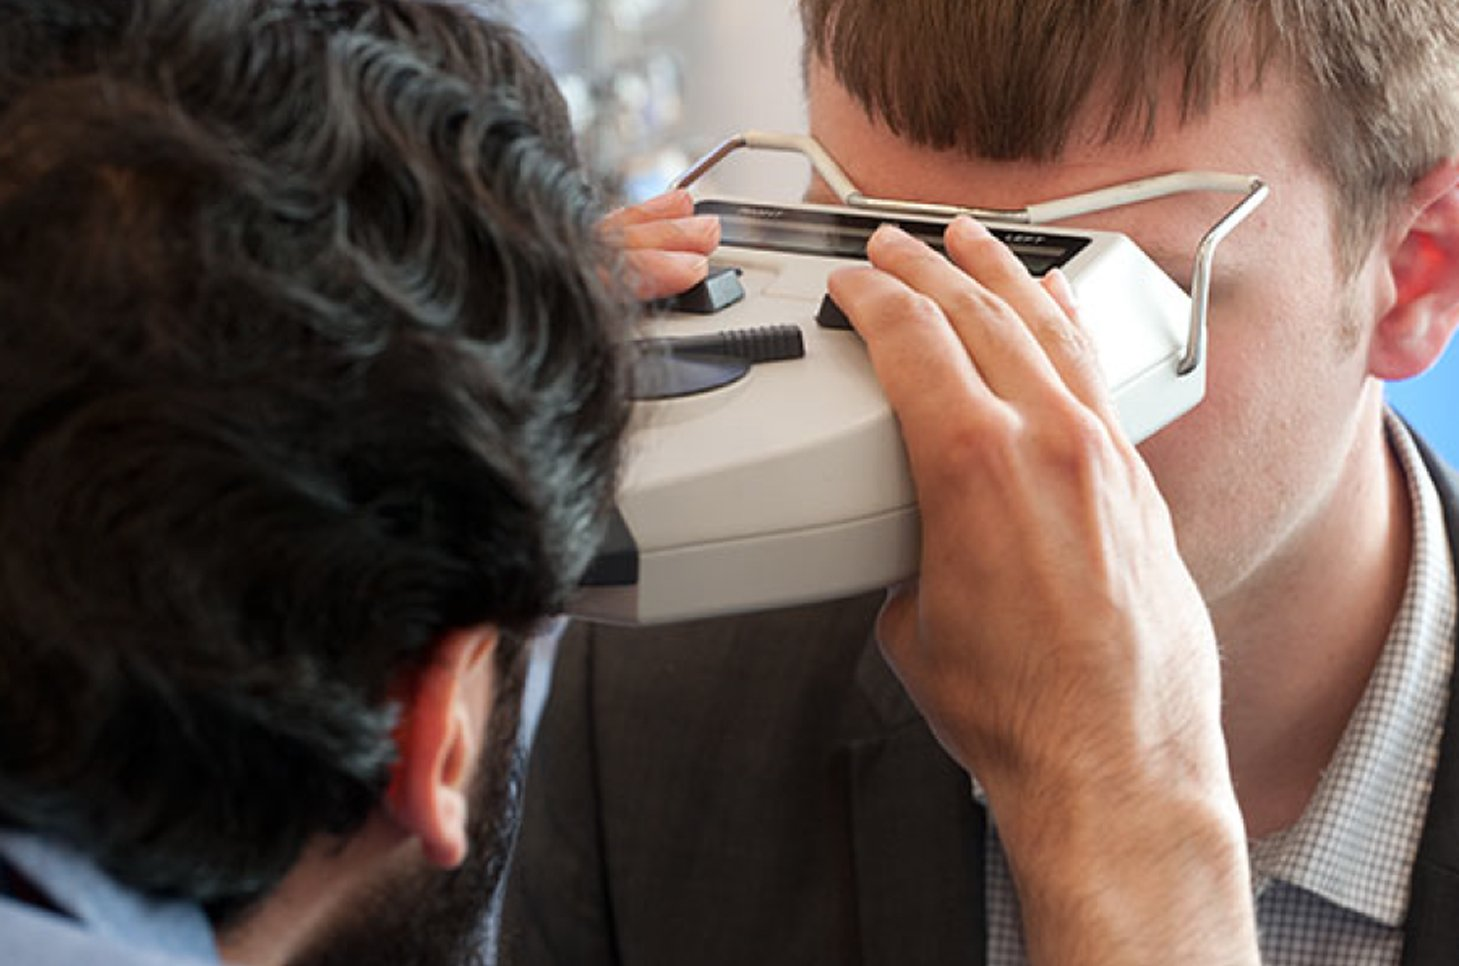 Optician checking boy's eyes with device